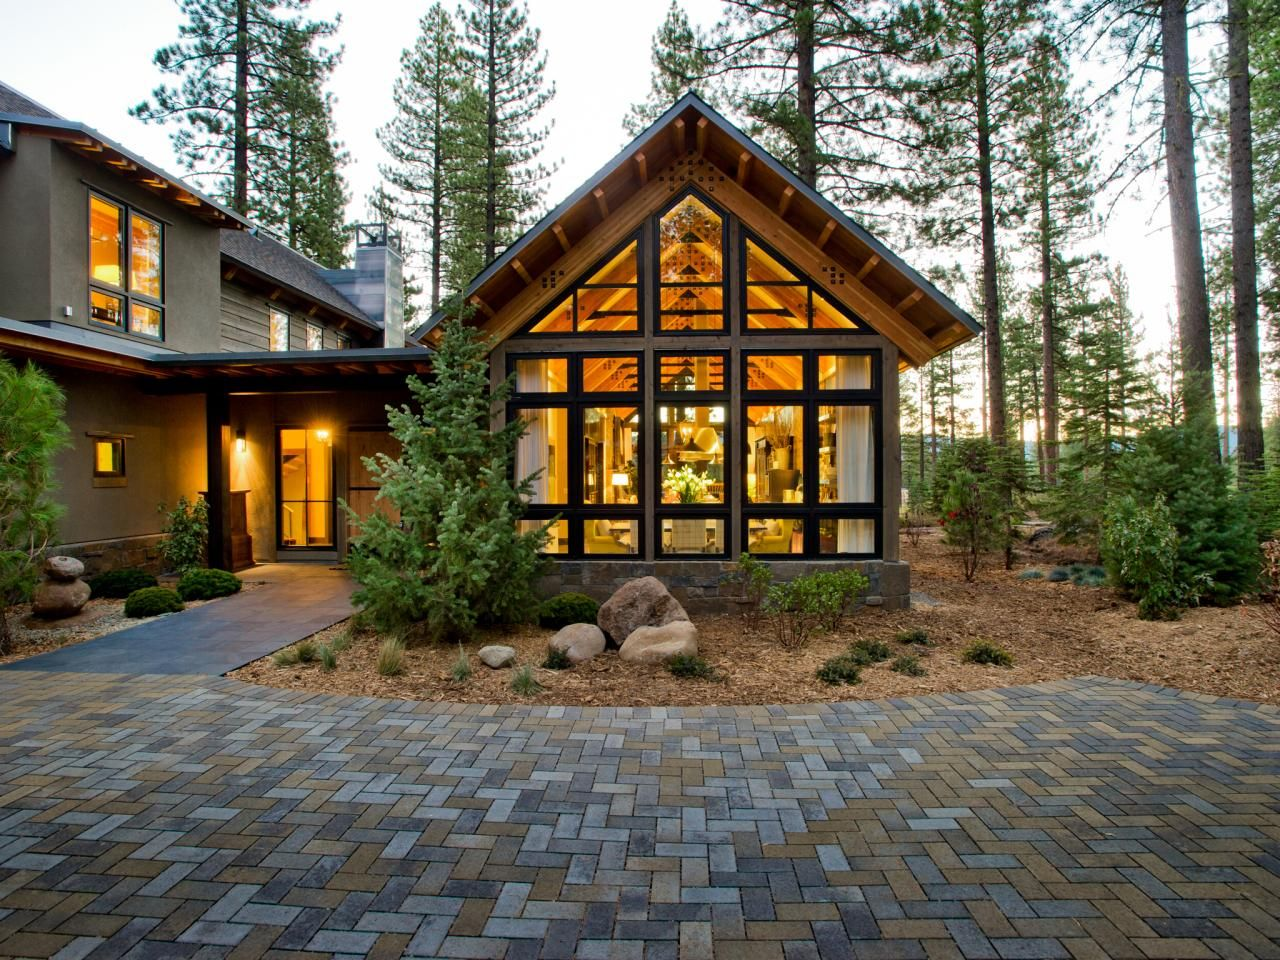 Stunning Cabin Retreat Brings Rustic Texan Charm to Lake Tahoe ...